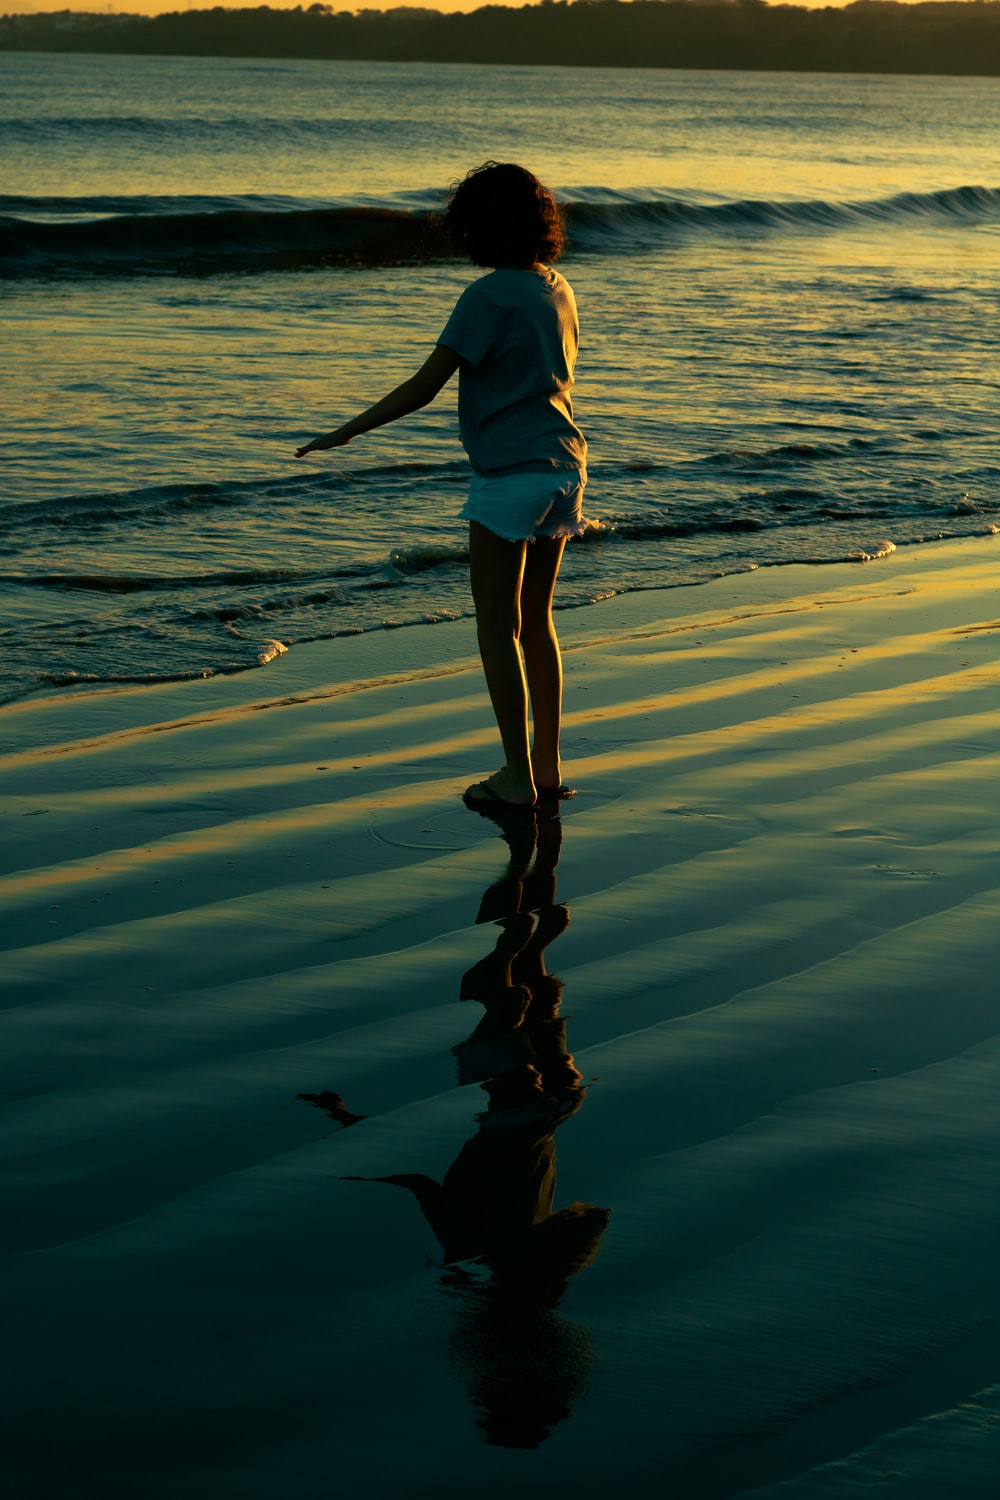 woman in white shirt and white shorts standing on seashore during daytime